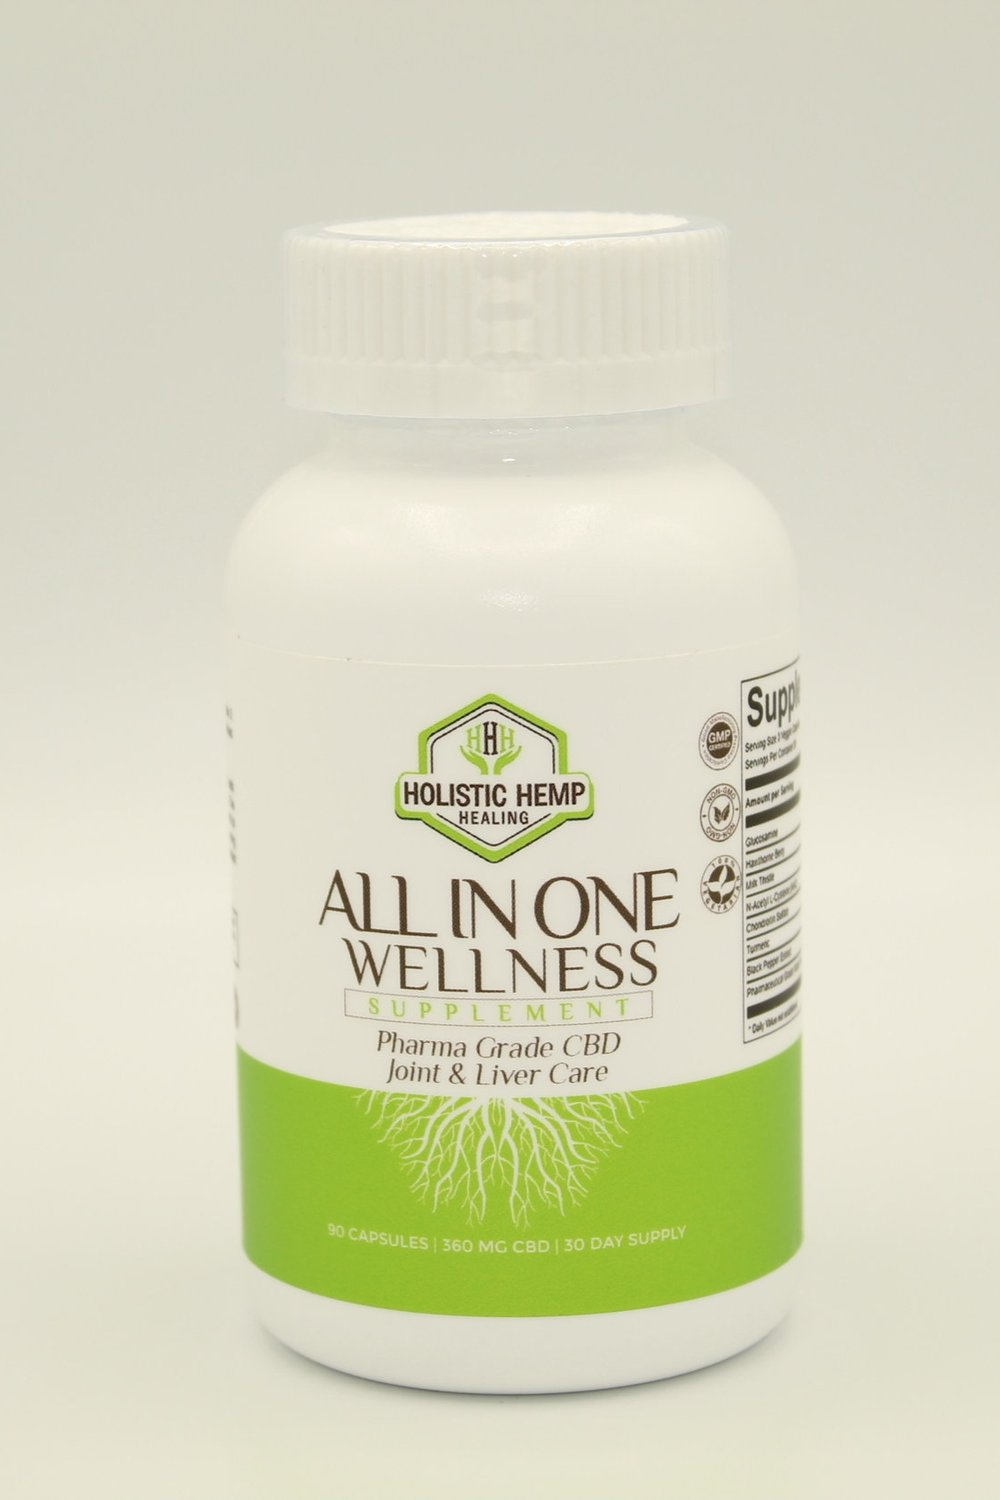 ALL IN ONE Wellness - $44.95All in One Wellness is a game changer in the industry. Not only does it contain premium all natural ingredients to promote restorative recovery, but a single serving (3 capsules) packs the benefits of 6 commonly recommended daily supplements.This product is 100% THC Free and contains Pharma Grade Water Soluble CBD Powder derived from industrial hemp.INGREDIENTS1000 mg Glucosamine, 400 mg Milk Thistle, 350 mg NAC, 400mg Hawthorne Berry, 150 mg Chondroitin Sulfate, 120 mg Turmeric, 12 mg Water Soluble CBD derived from industrial hemp, and 15 mg Black Pepper ExtractDIRECTIONS FOR USETake 3 capsules orally once daily.